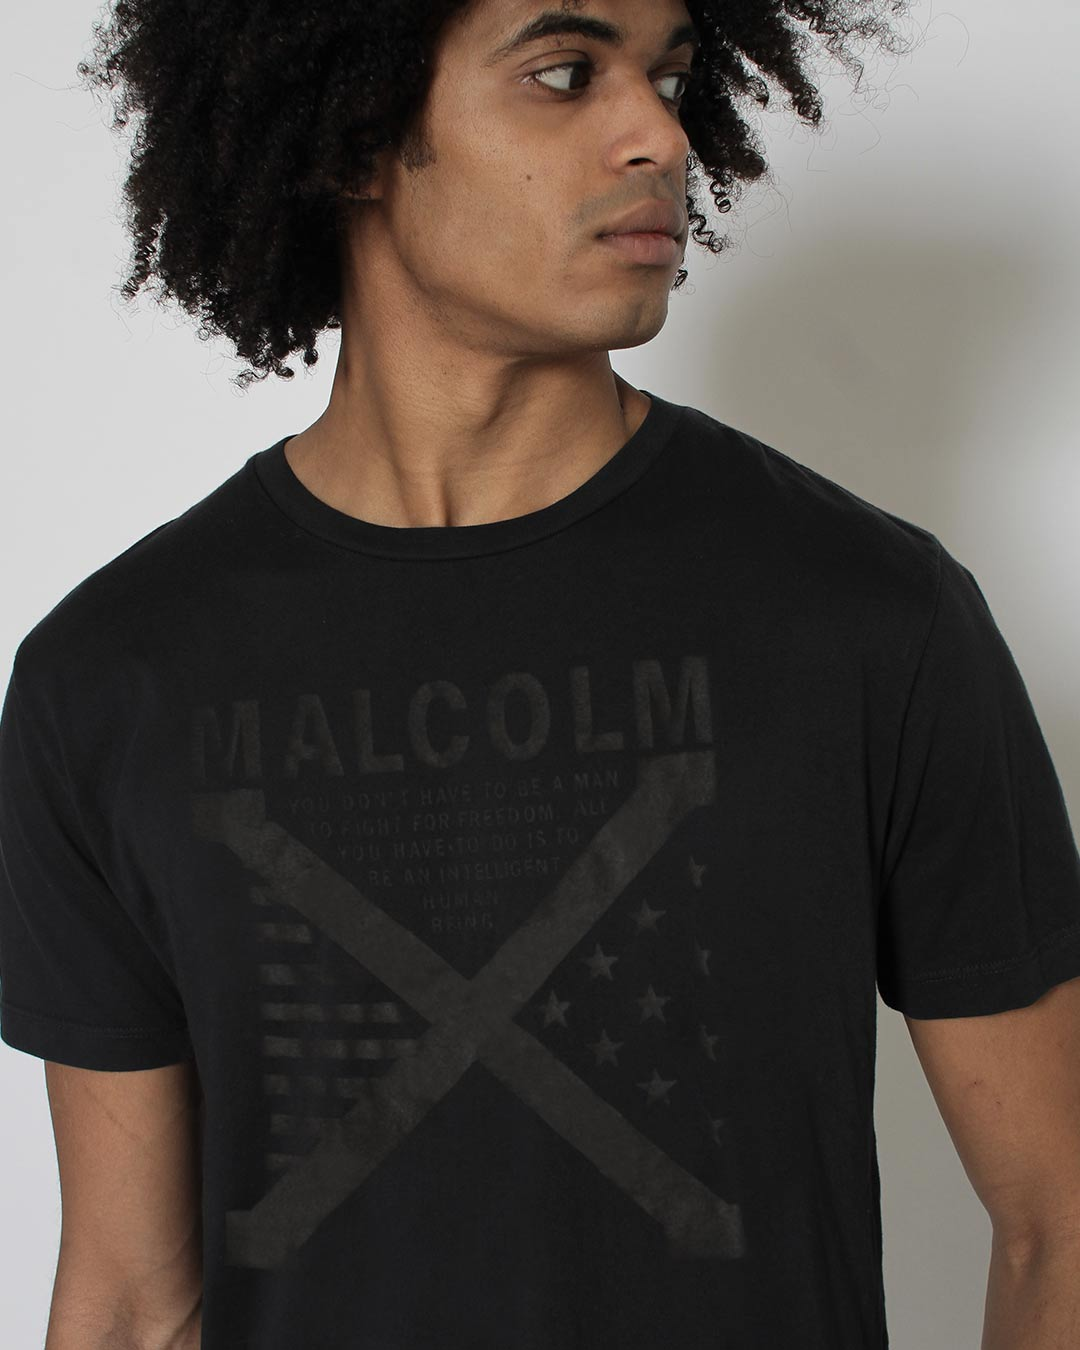 BHT - Malcolm X Tee - Roots of Inc dba Roots of Fight